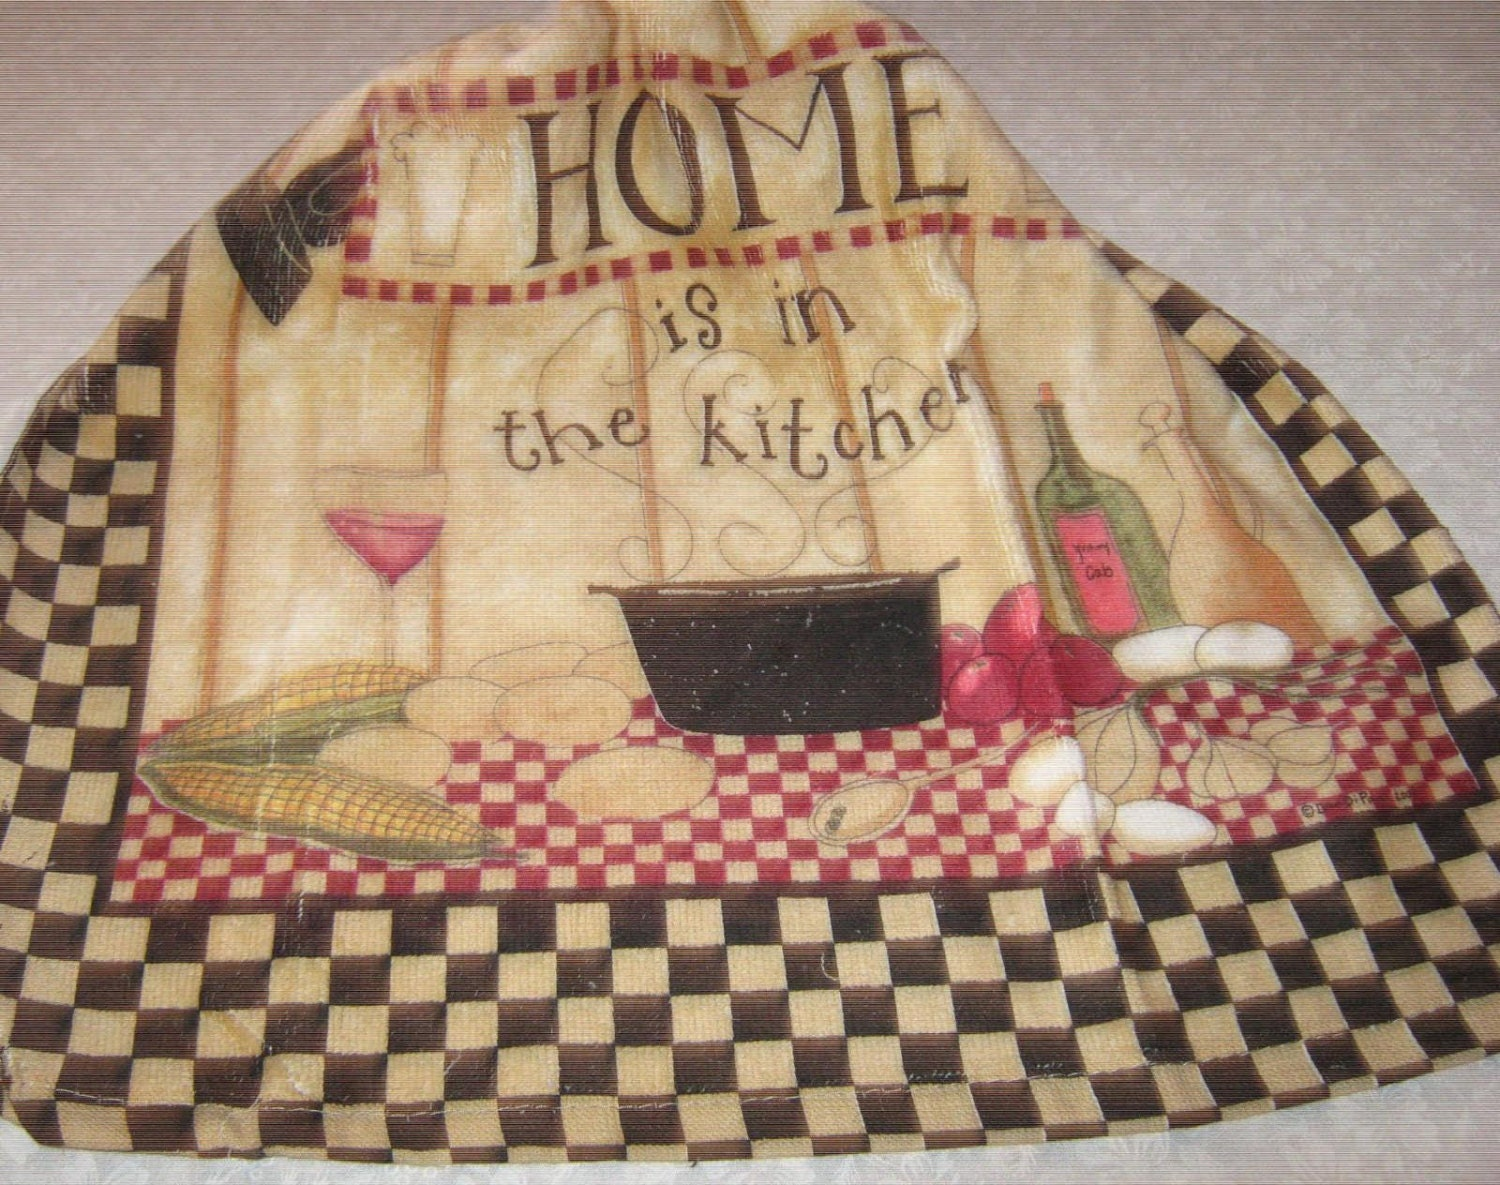 Crochet kitchen hanging towel kay dee design home is in the Kay dee designs kitchen towels